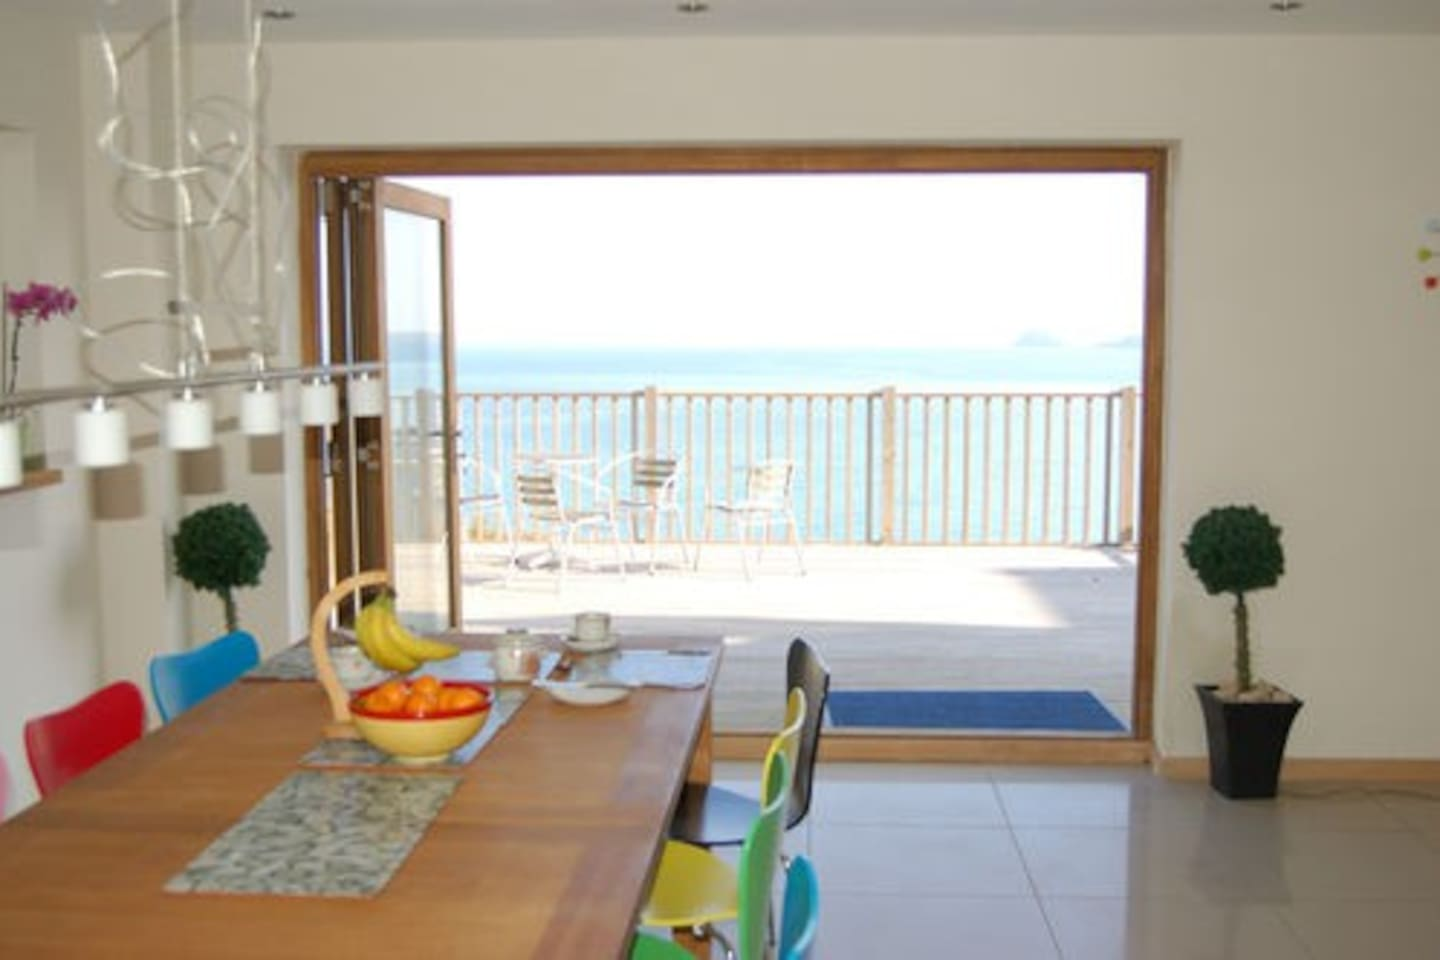 Dining room and deck overlooking beach